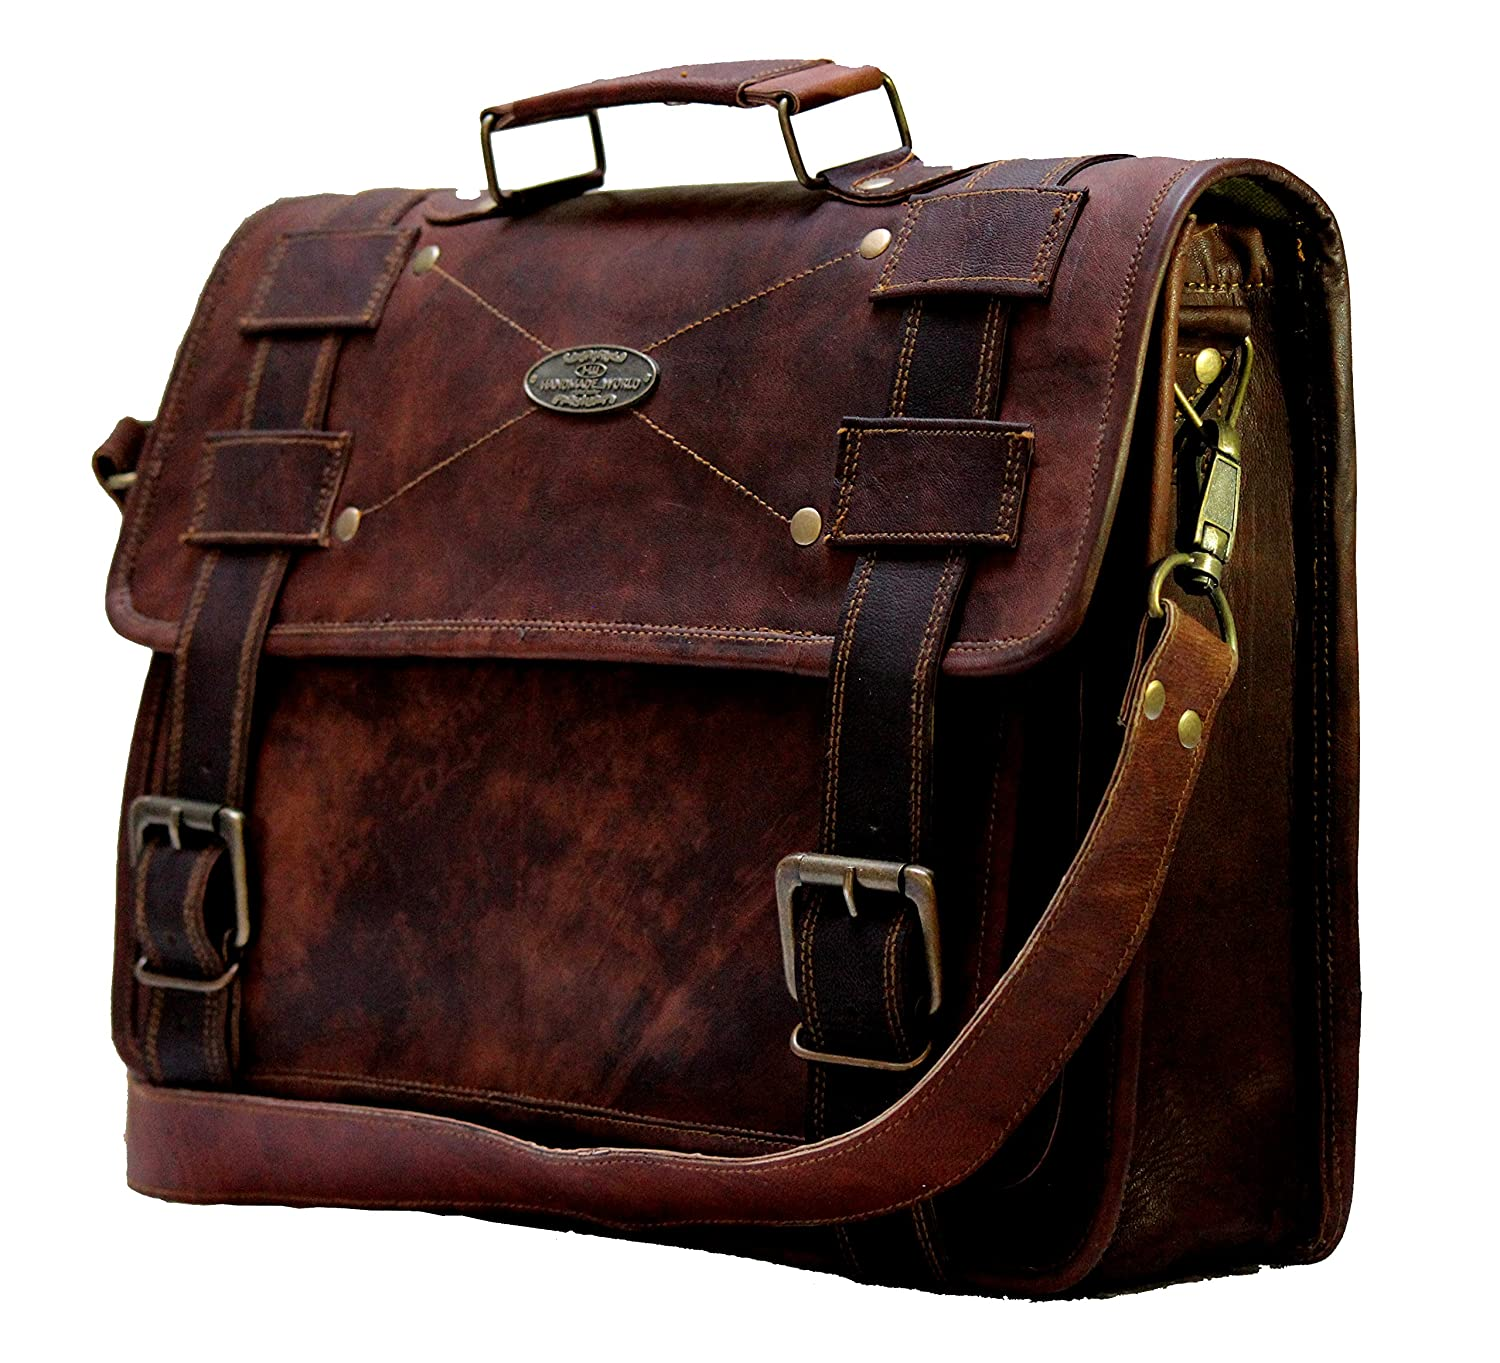 c3c9211eccb7 Handmade World Leather Messenger Bags 15.6 for Men Women Mens Laptop  Computer Bag Best Shoulder Satchel School Distressed Briefcase Unisex Cross  Body ...